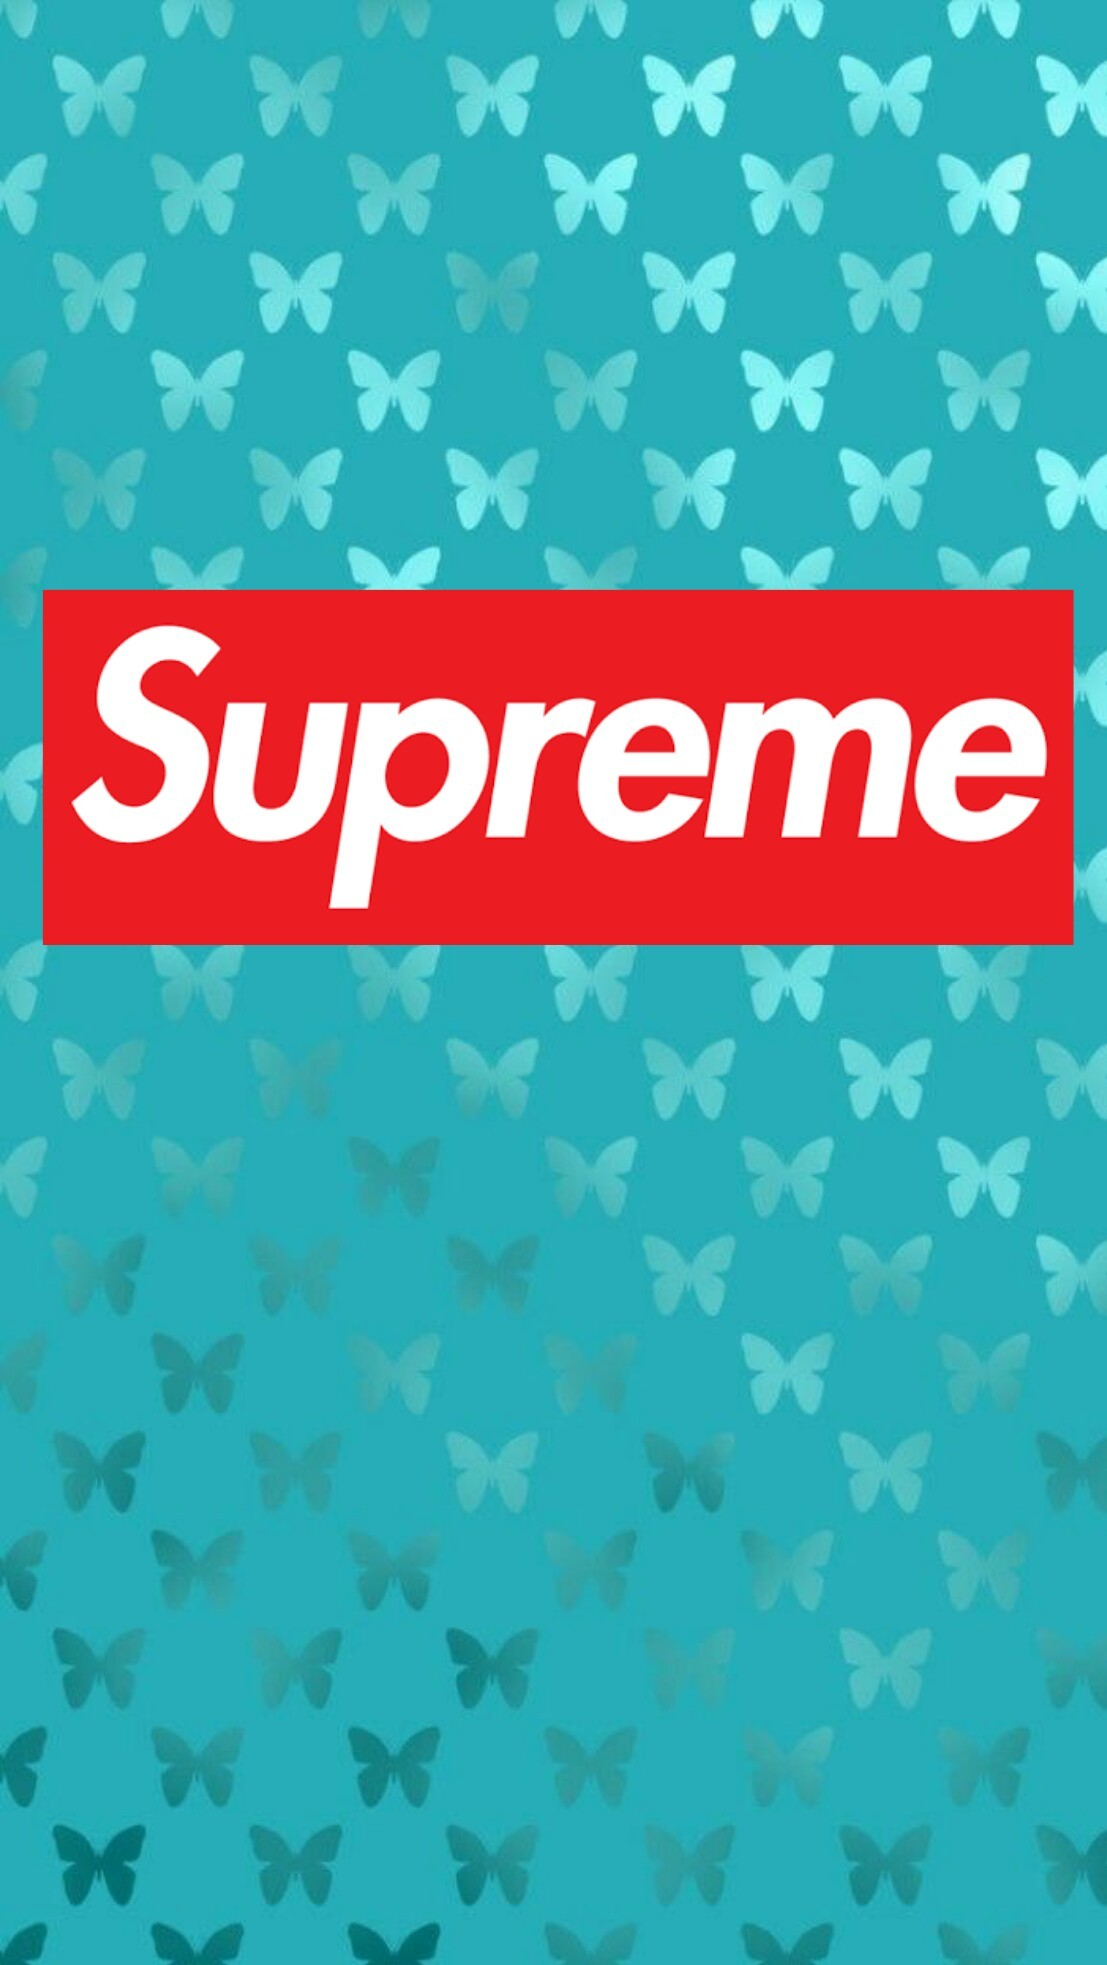 Supreme wallpaper ·① Download free High Resolution ...